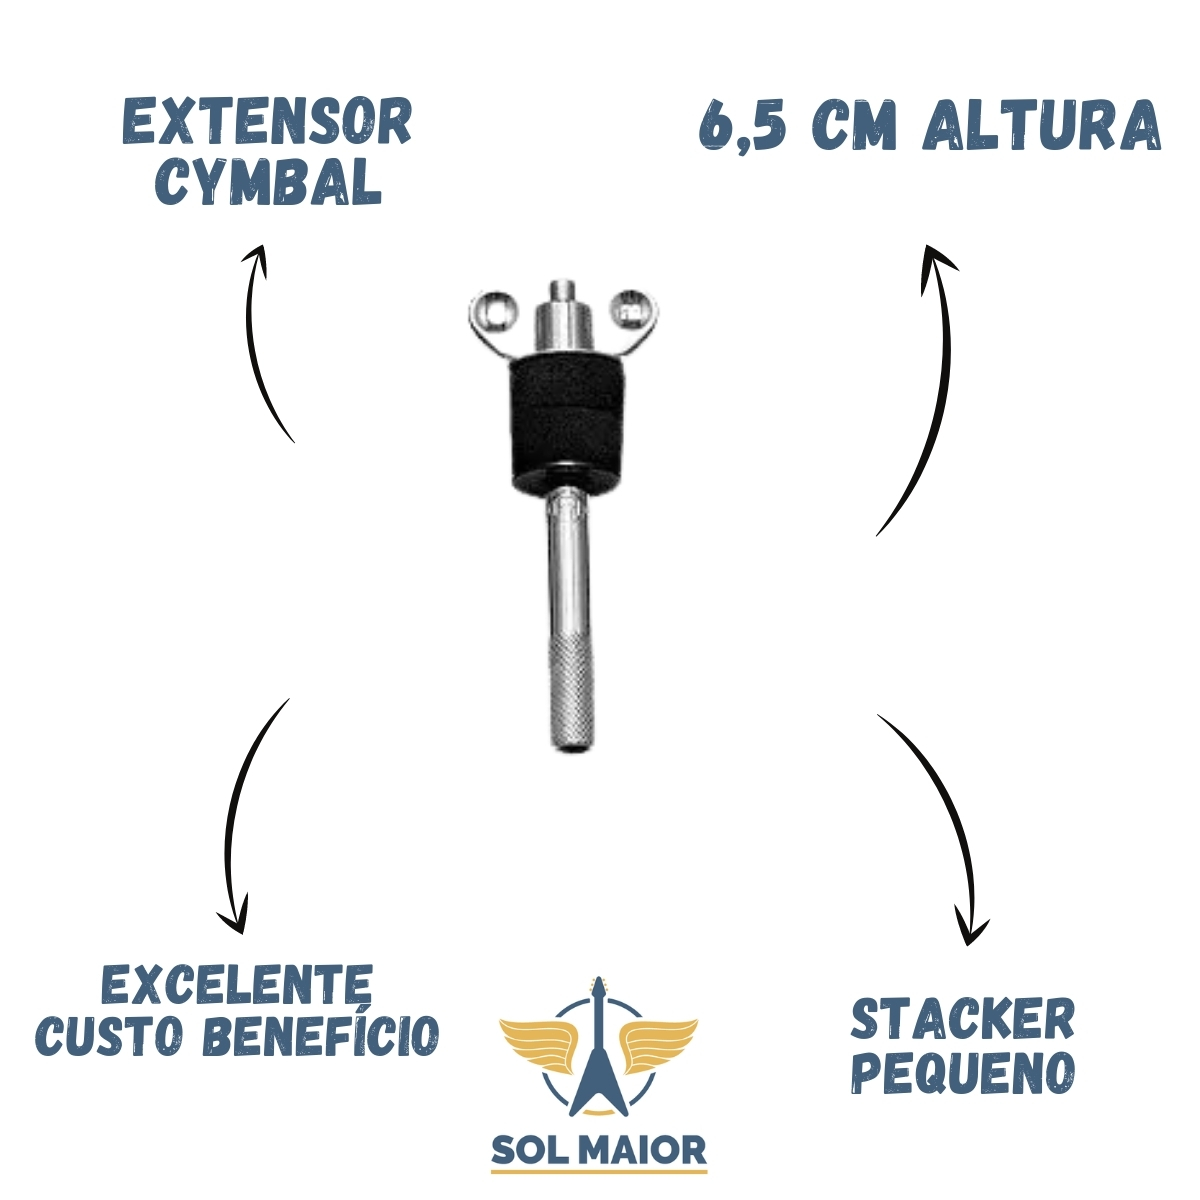 Extensor Cymbal Stacker Pequeno Ext 01 Liverpool Hit Hat Promoçao